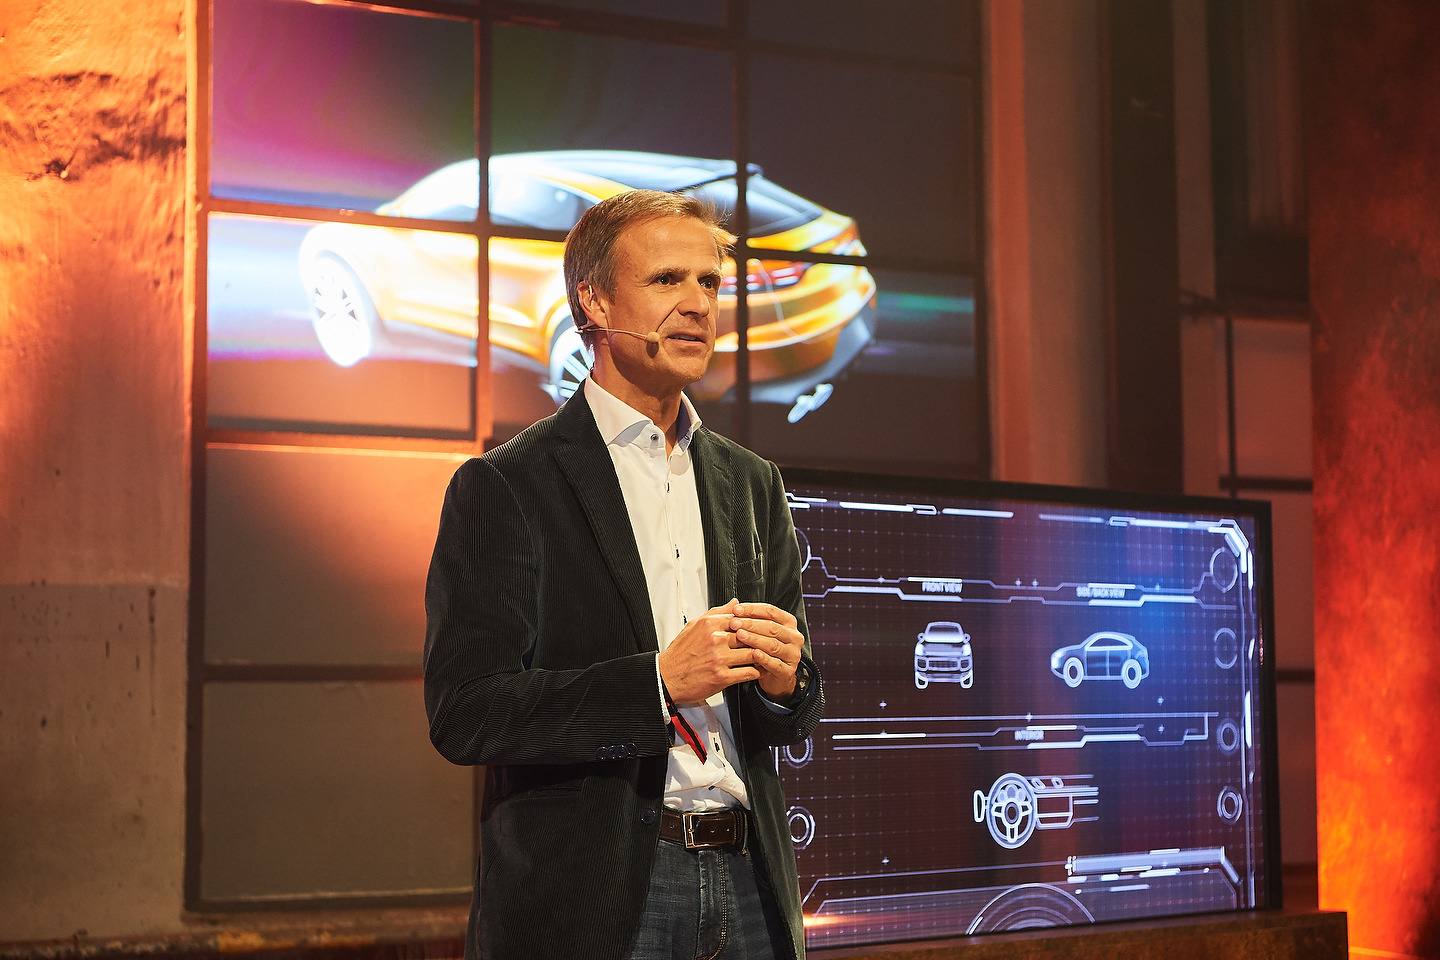 Michael Mauer, Vice President Style Porsche, presenting the new Cayenne Turbo CoupŽ